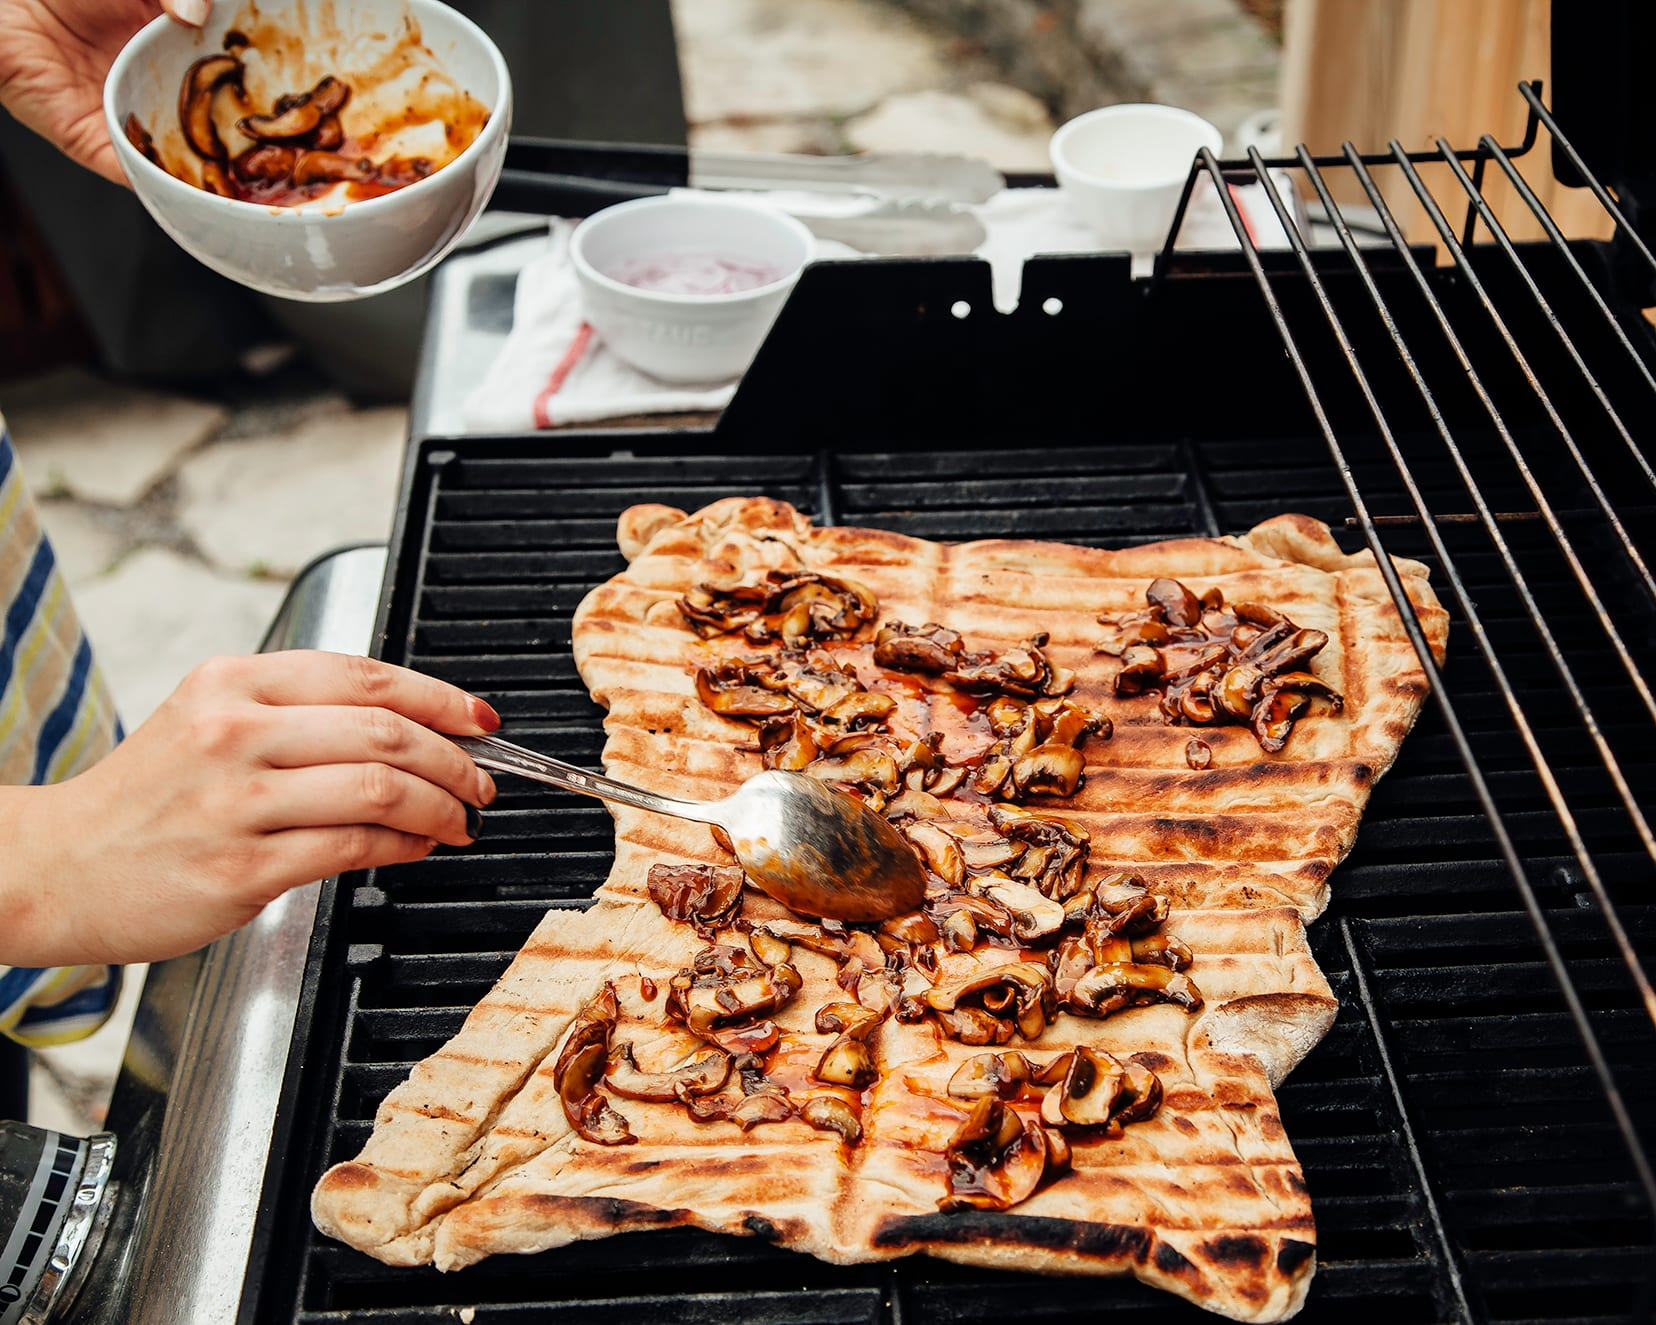 A hand is spooning saucy mushrooms onto a flatbread on an outdoor grill.